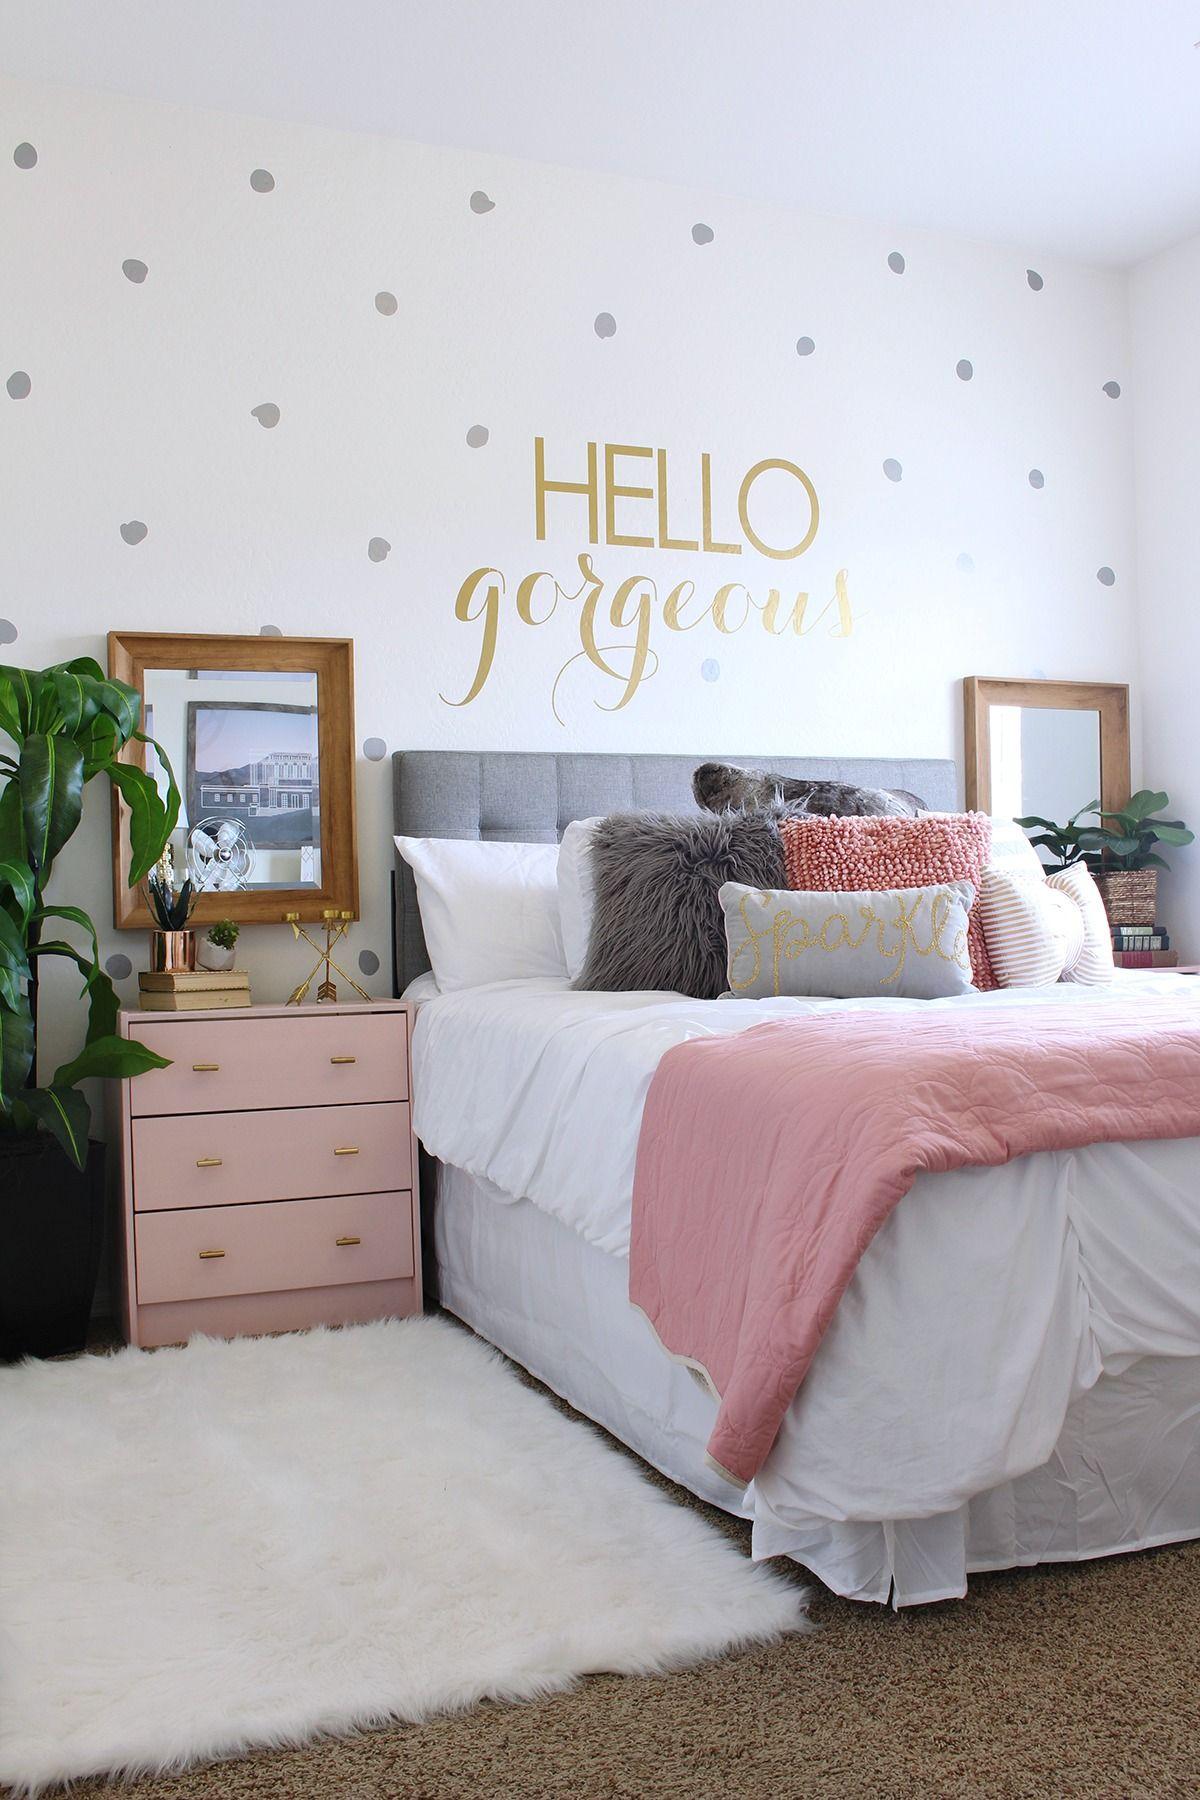 Marvelous Teen Room Makeover Ideas   Www.classyclutter.net | Love The Combo Of Grey  And Blush Pink With The Metallic Gold! Those Pink Nightstands Are So Cute!